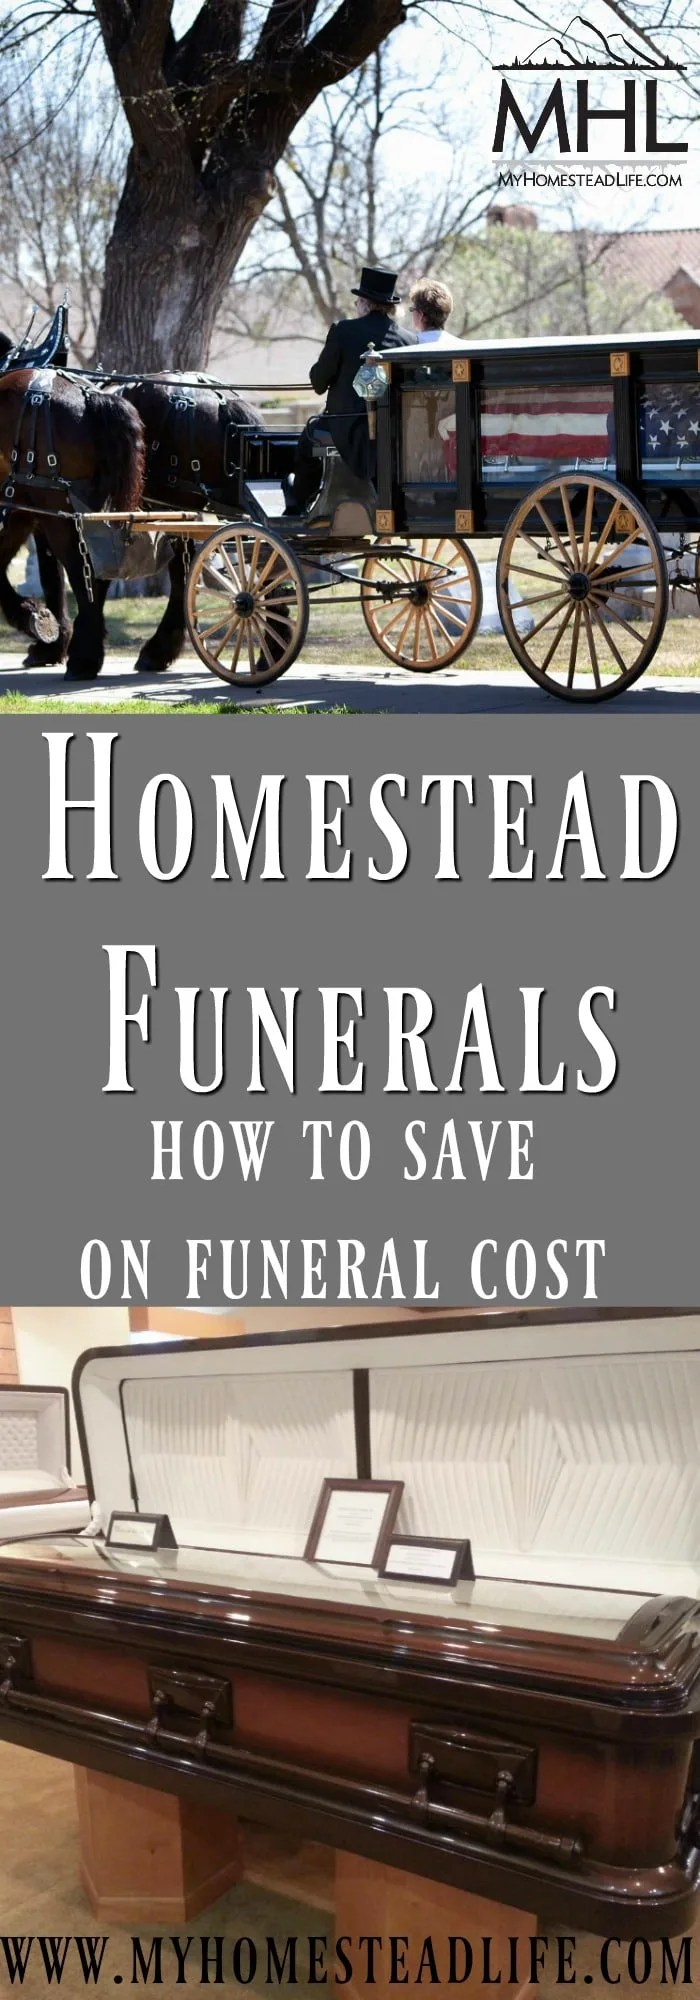 Homestead Funerals- How to Save On Funeral Cost. Save thousands by having a home funeral and make it more meaningful.